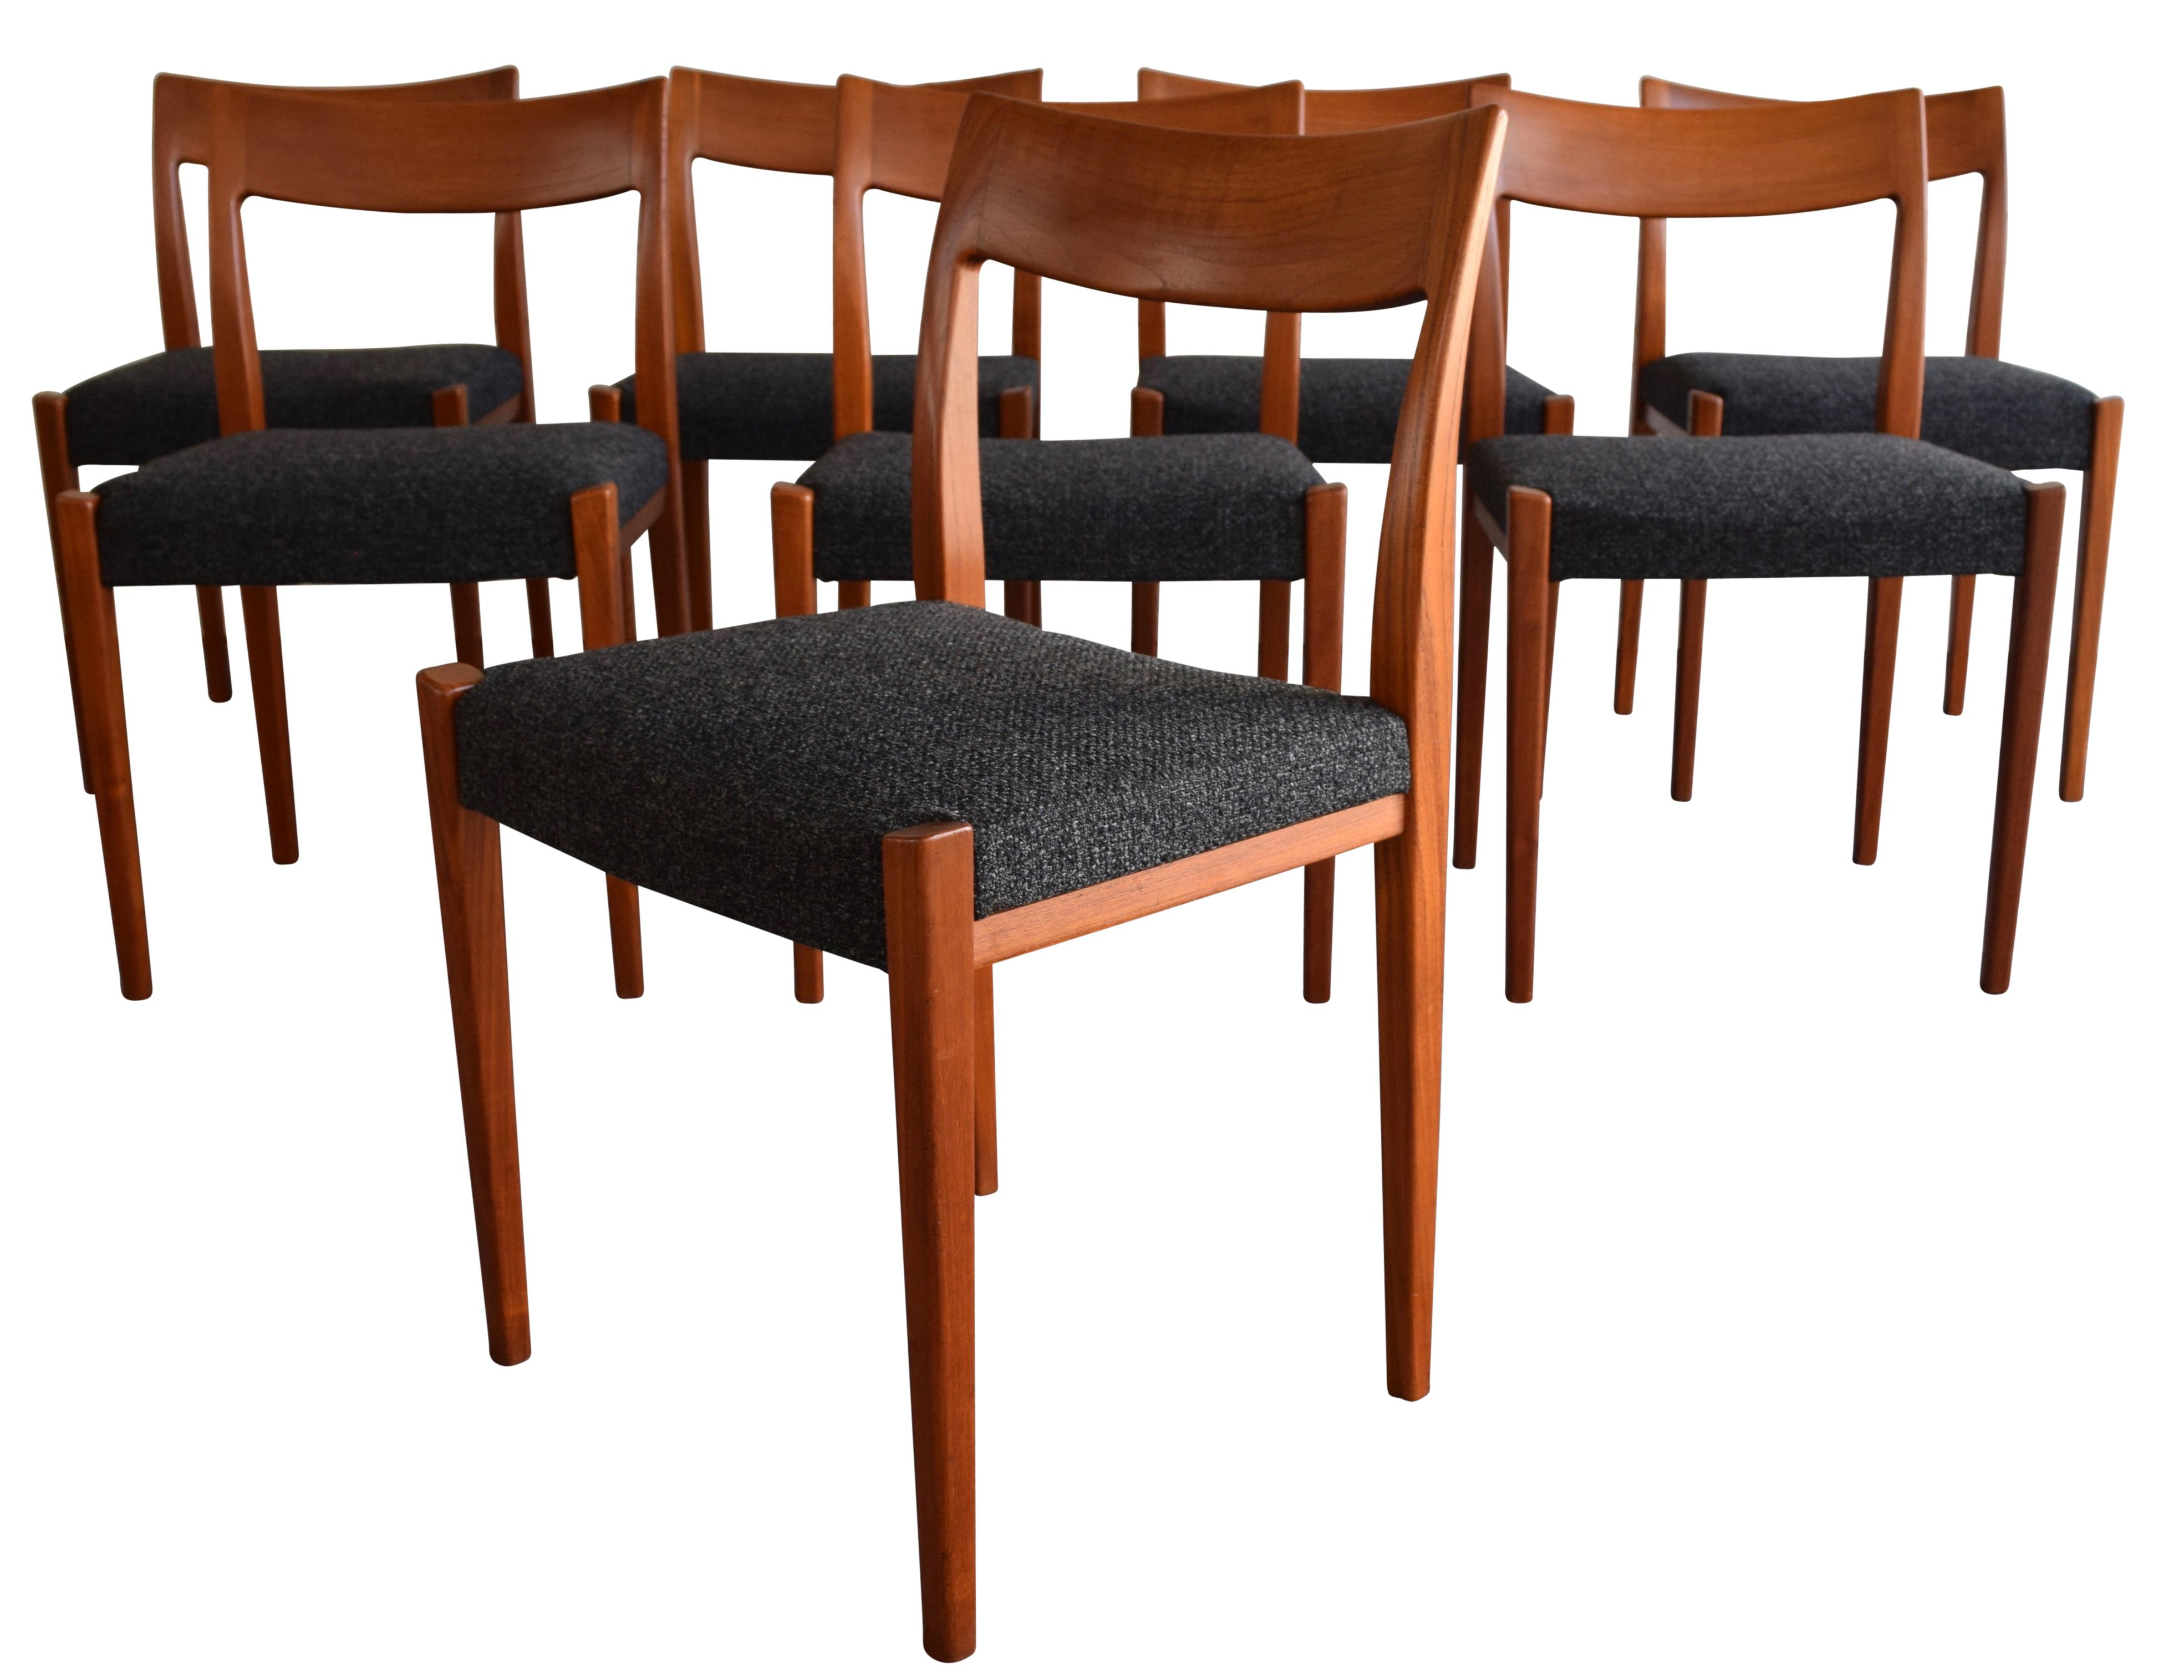 Merveilleux Here Is An Absolutely Stunning Set Of Eight Dining Chairs Designed By Yngve  Ekstrom For Troeds